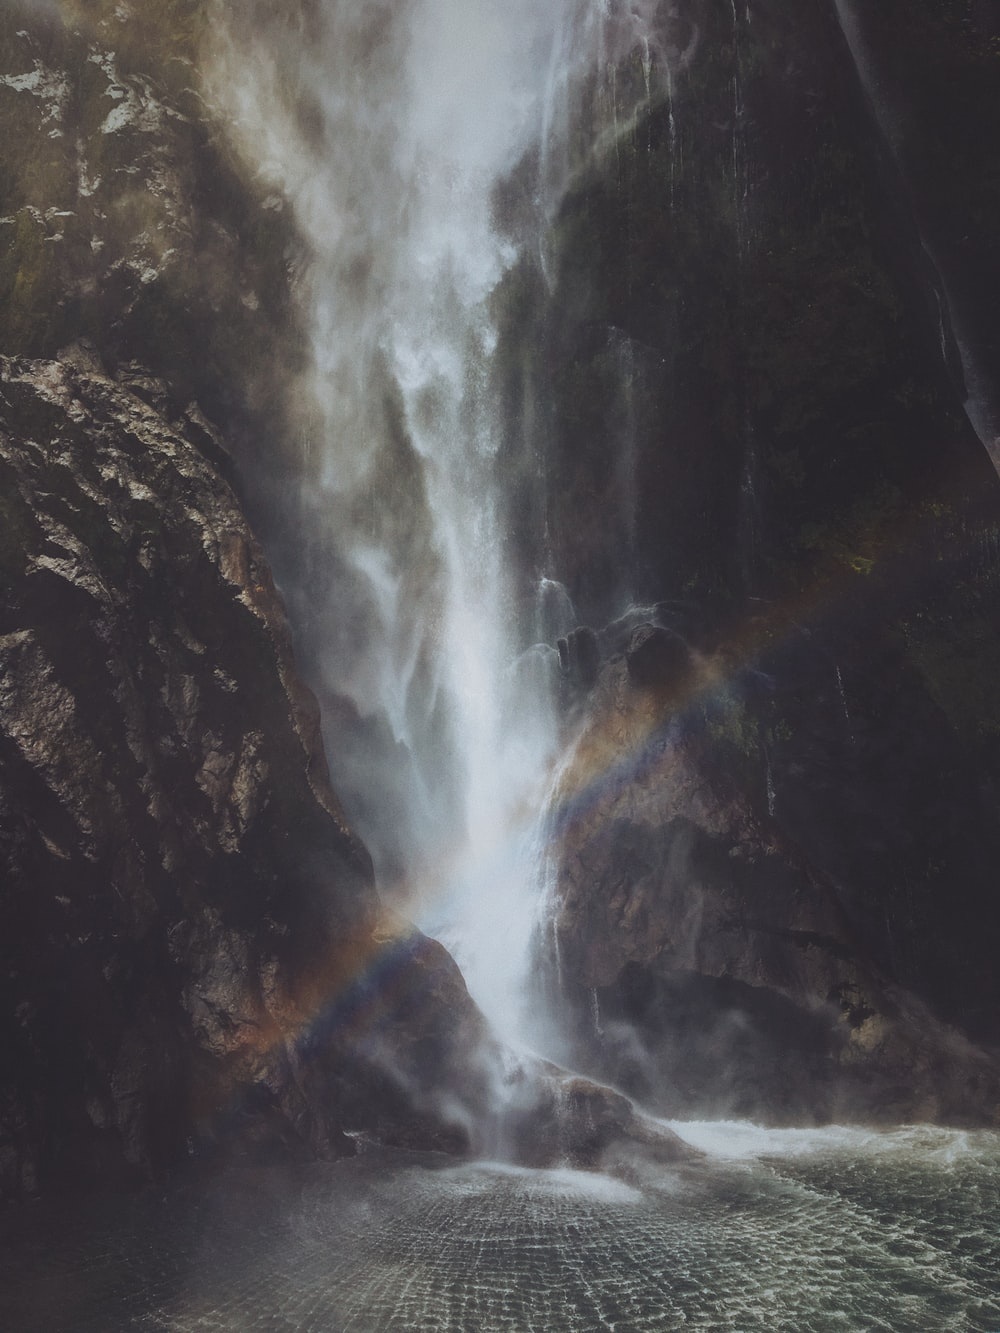 rainbow near the waterfalls